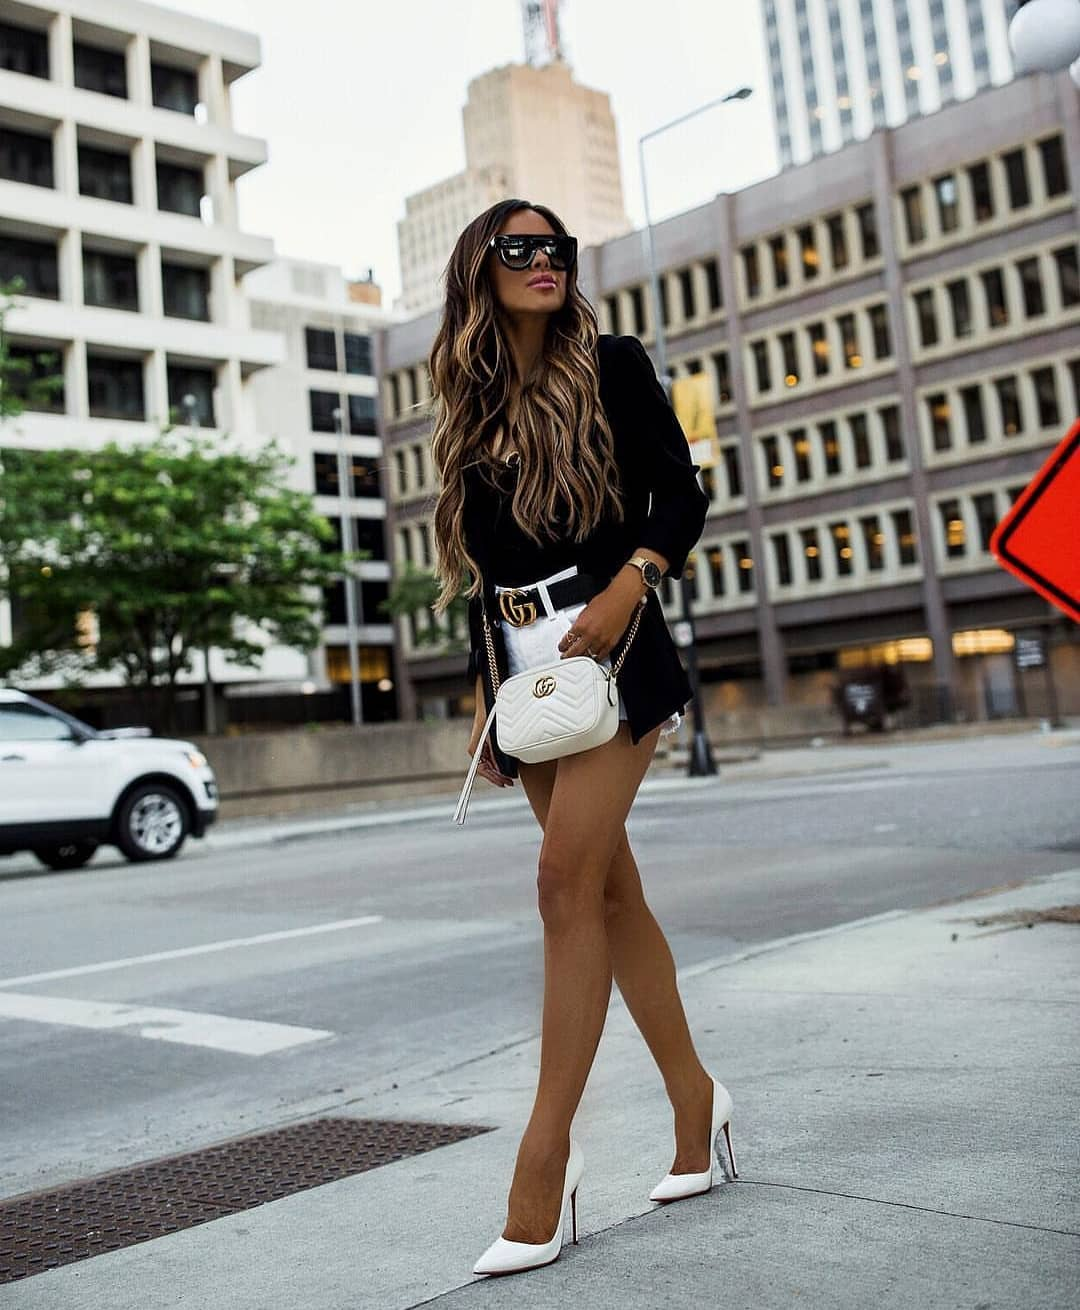 How To Wear Black Blazer With White Shorts And White Heels This Summer 2020